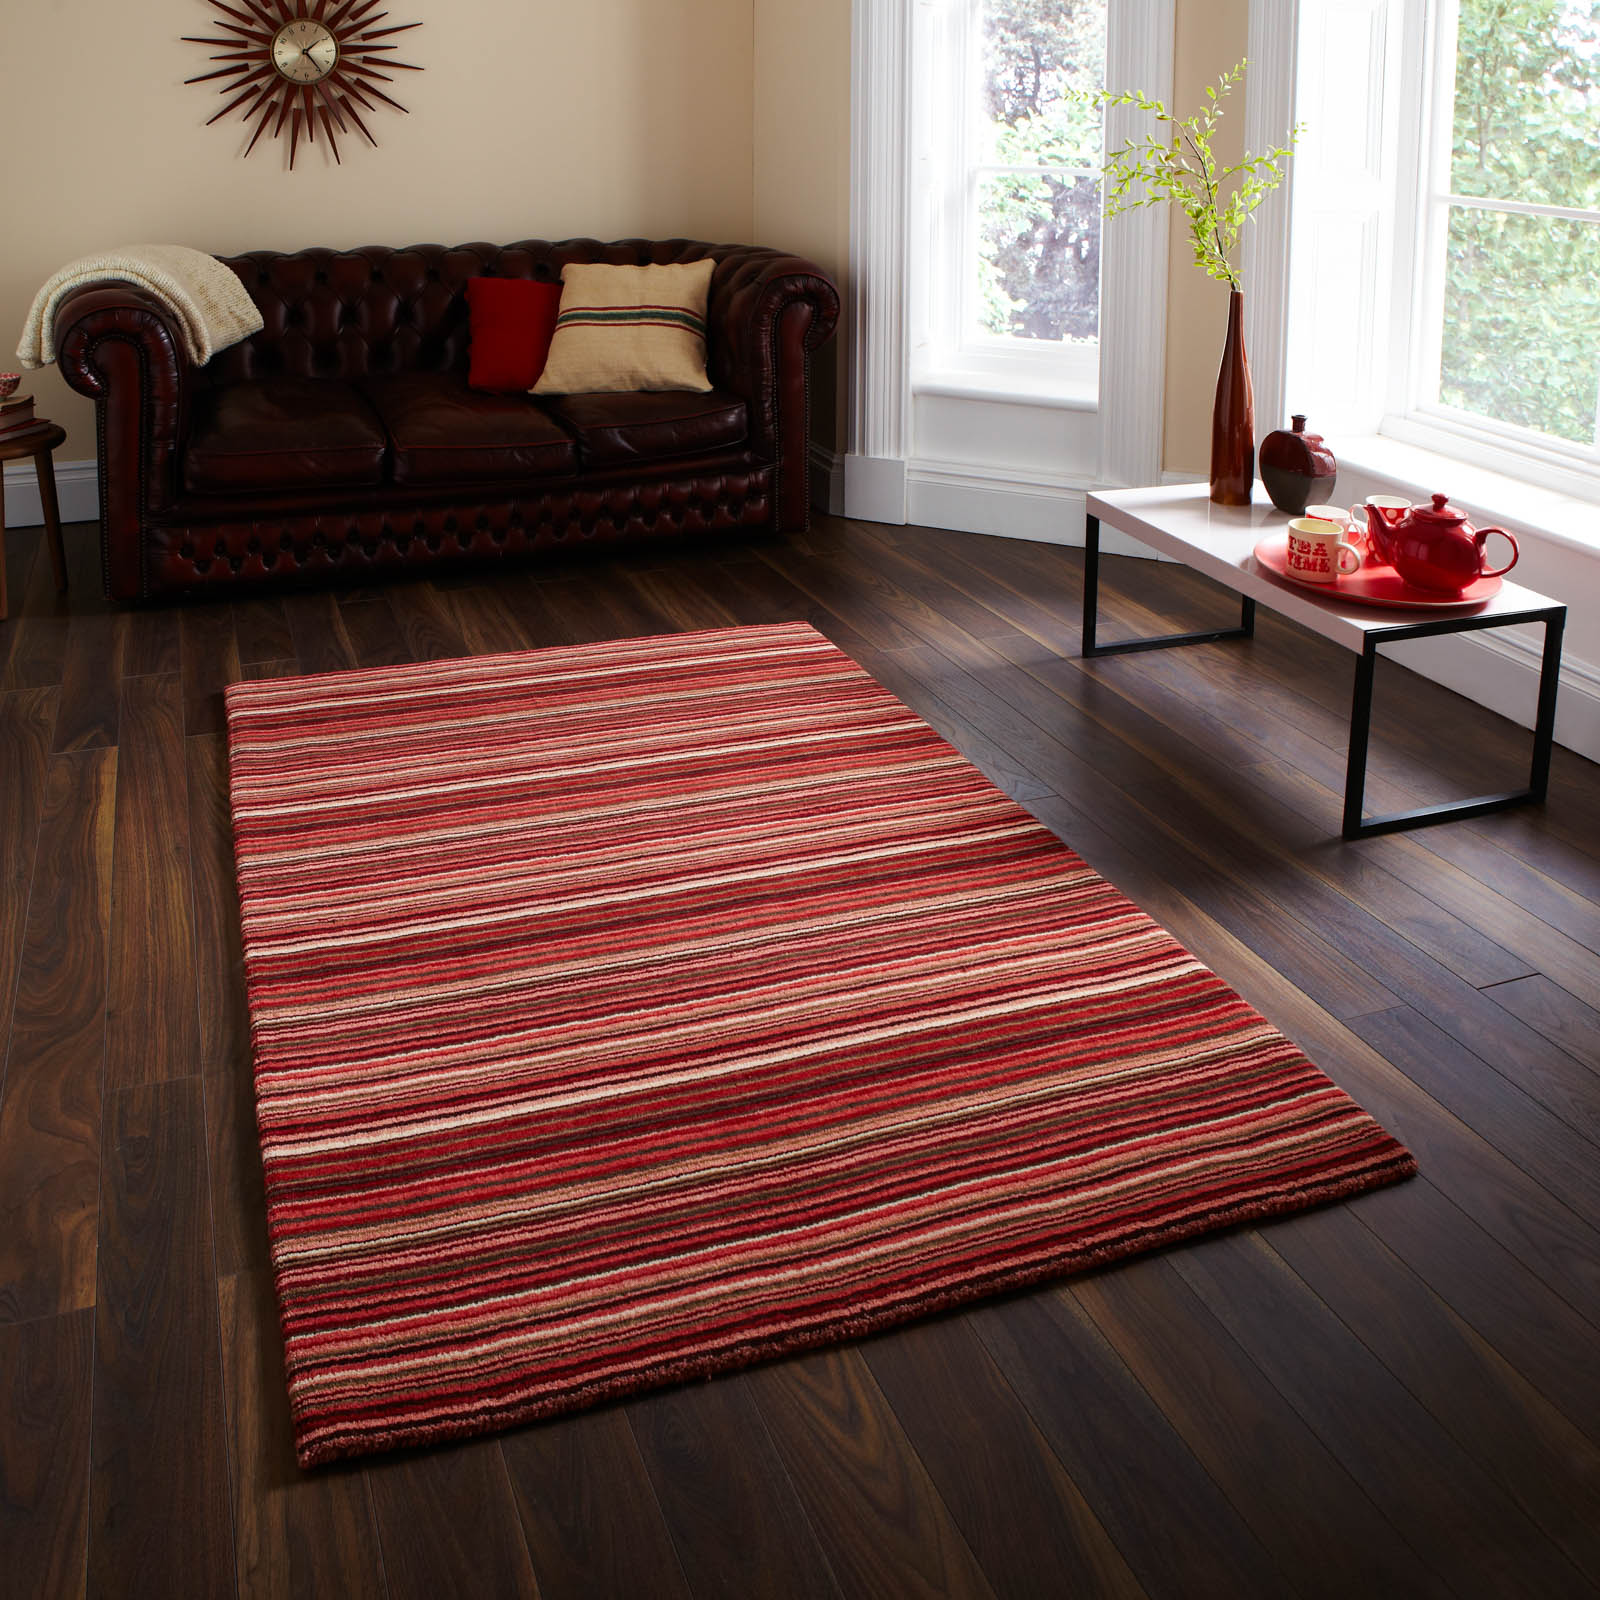 Oxford Rugs Wool Rugs Striped Rugs